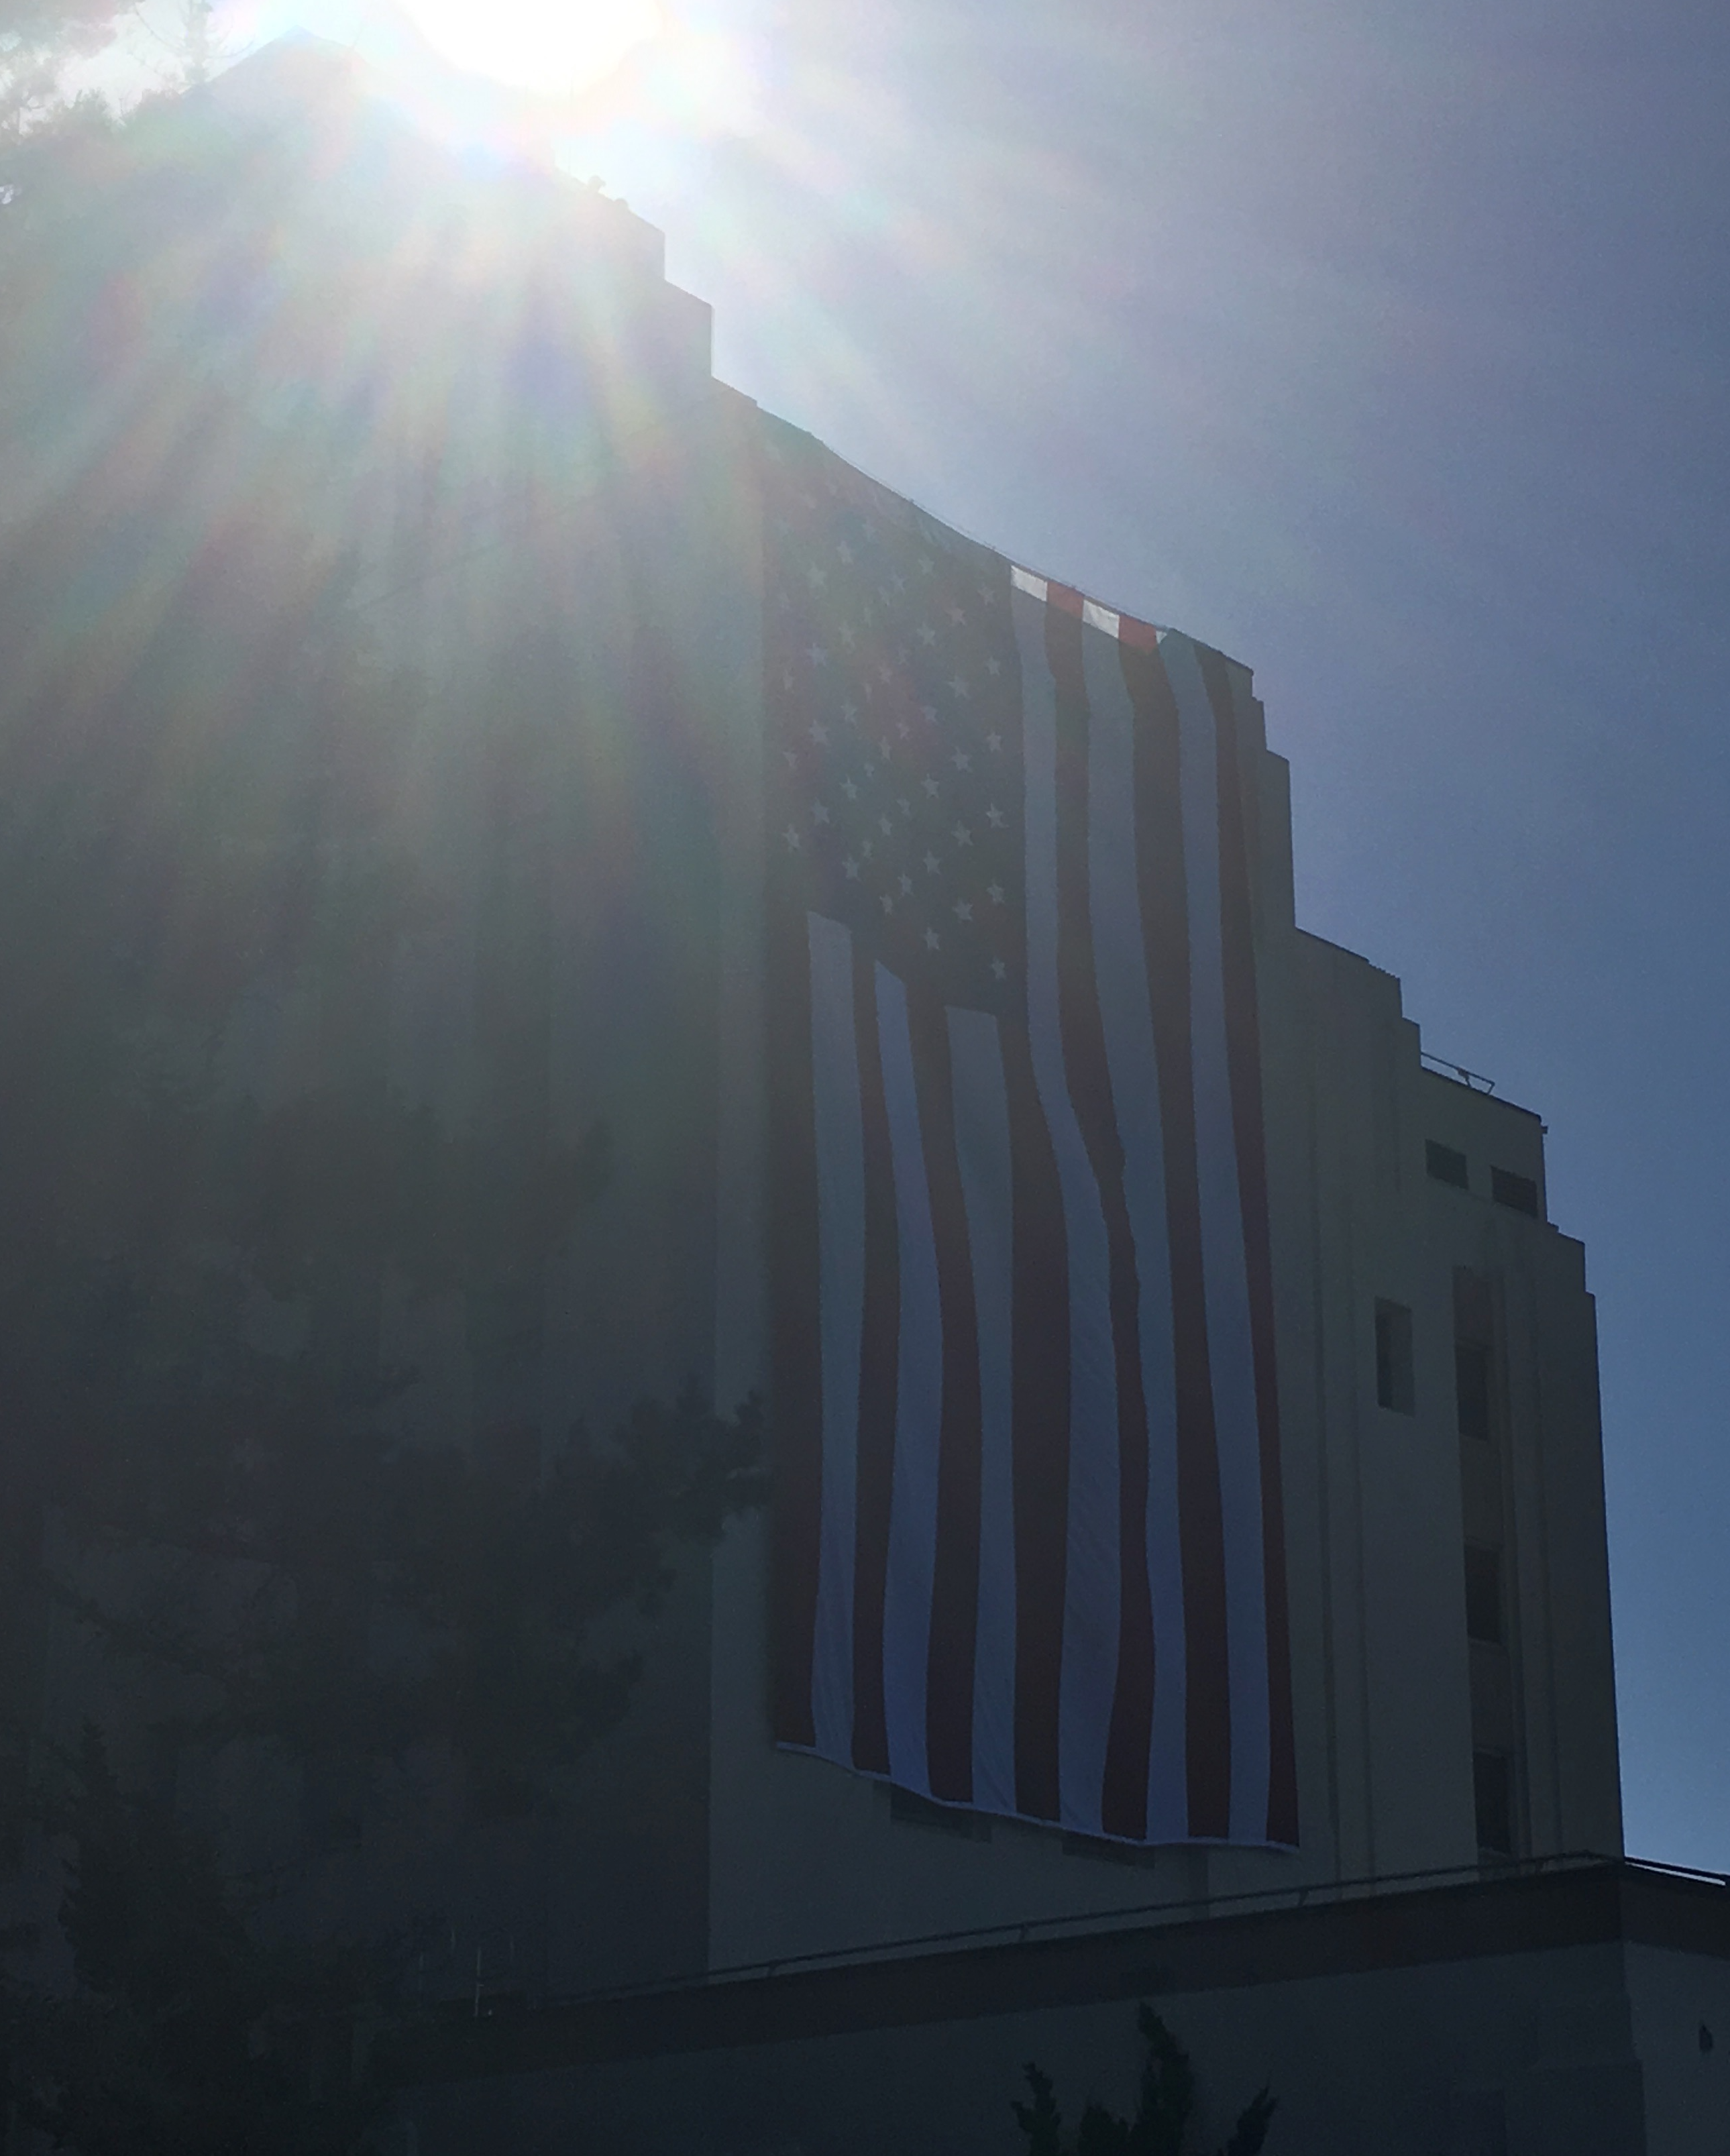 Large VA flag on building